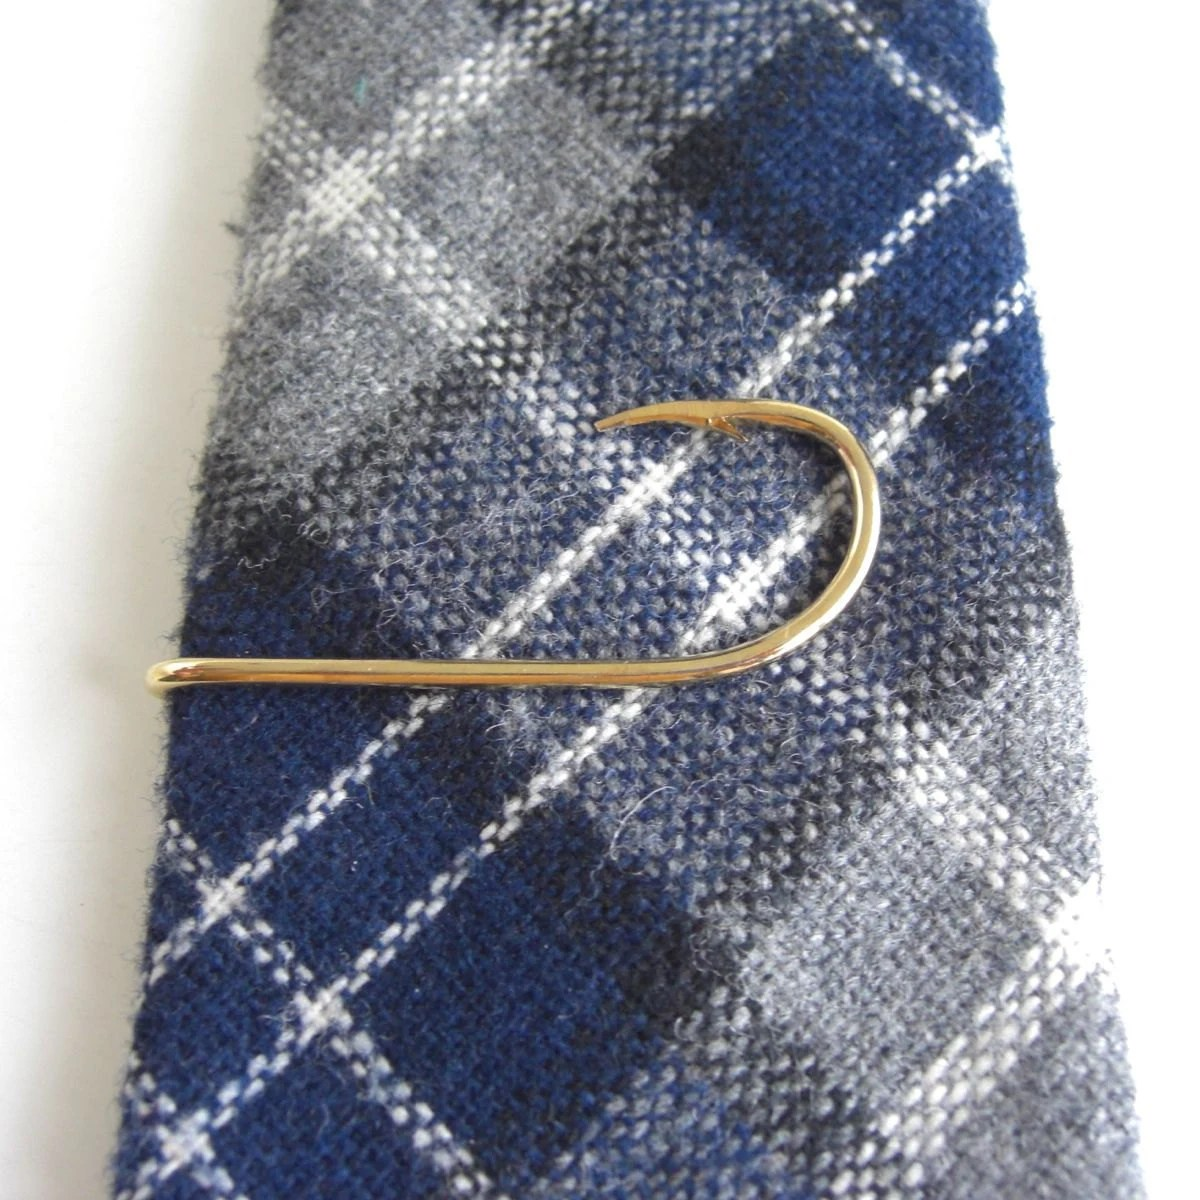 Gold fish hook tie bar tie clasp tie clip haute juice for Tie fishing hook